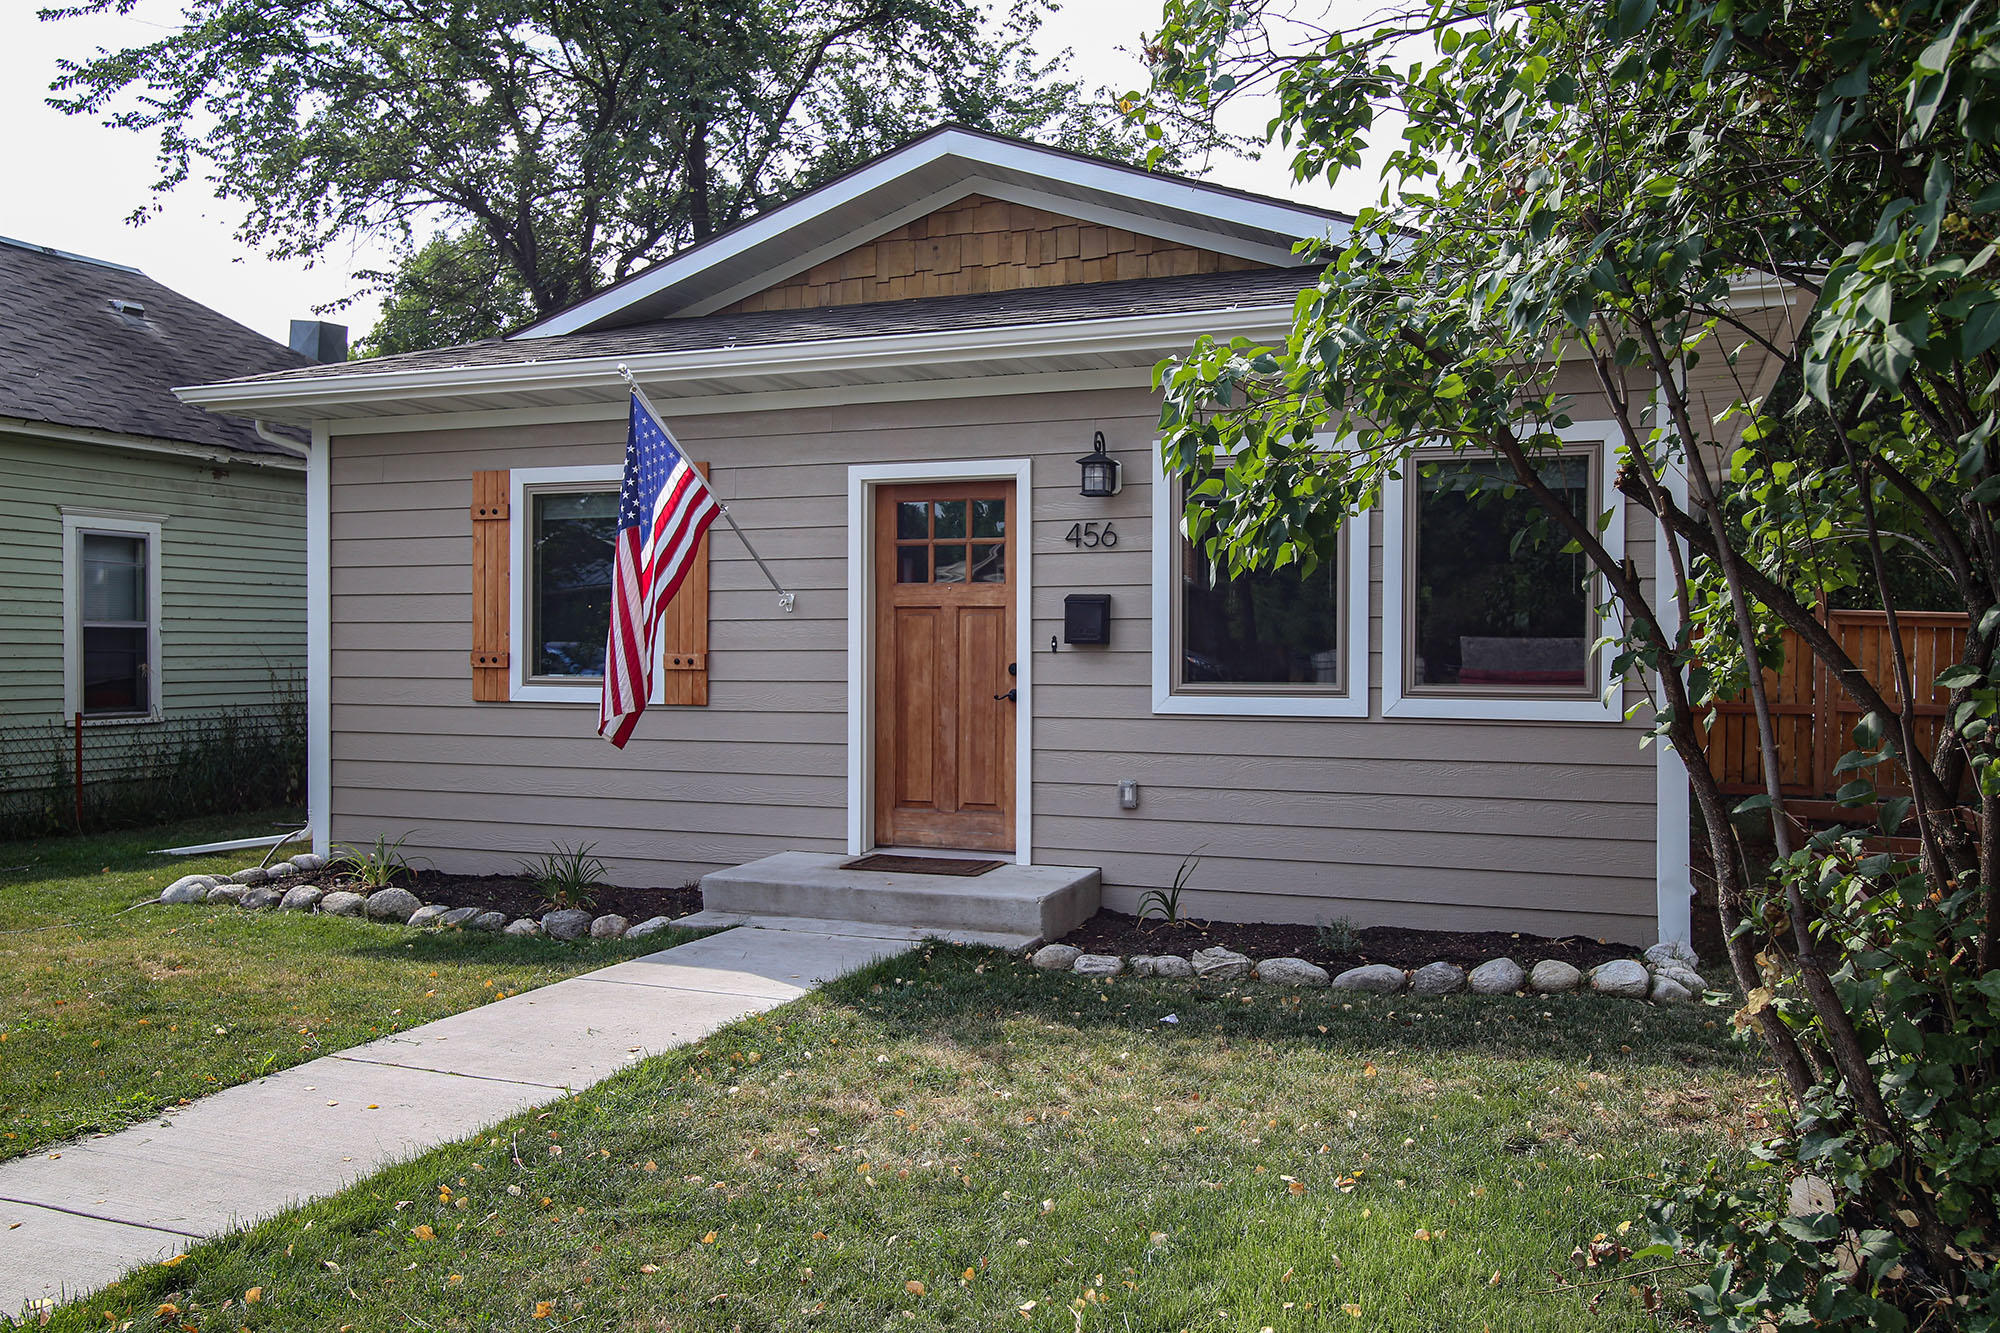 456 E 3rd Street, Sheridan, Wyoming 82801, 3 Bedrooms Bedrooms, ,2 BathroomsBathrooms,Residential,For Sale,3rd,20-755